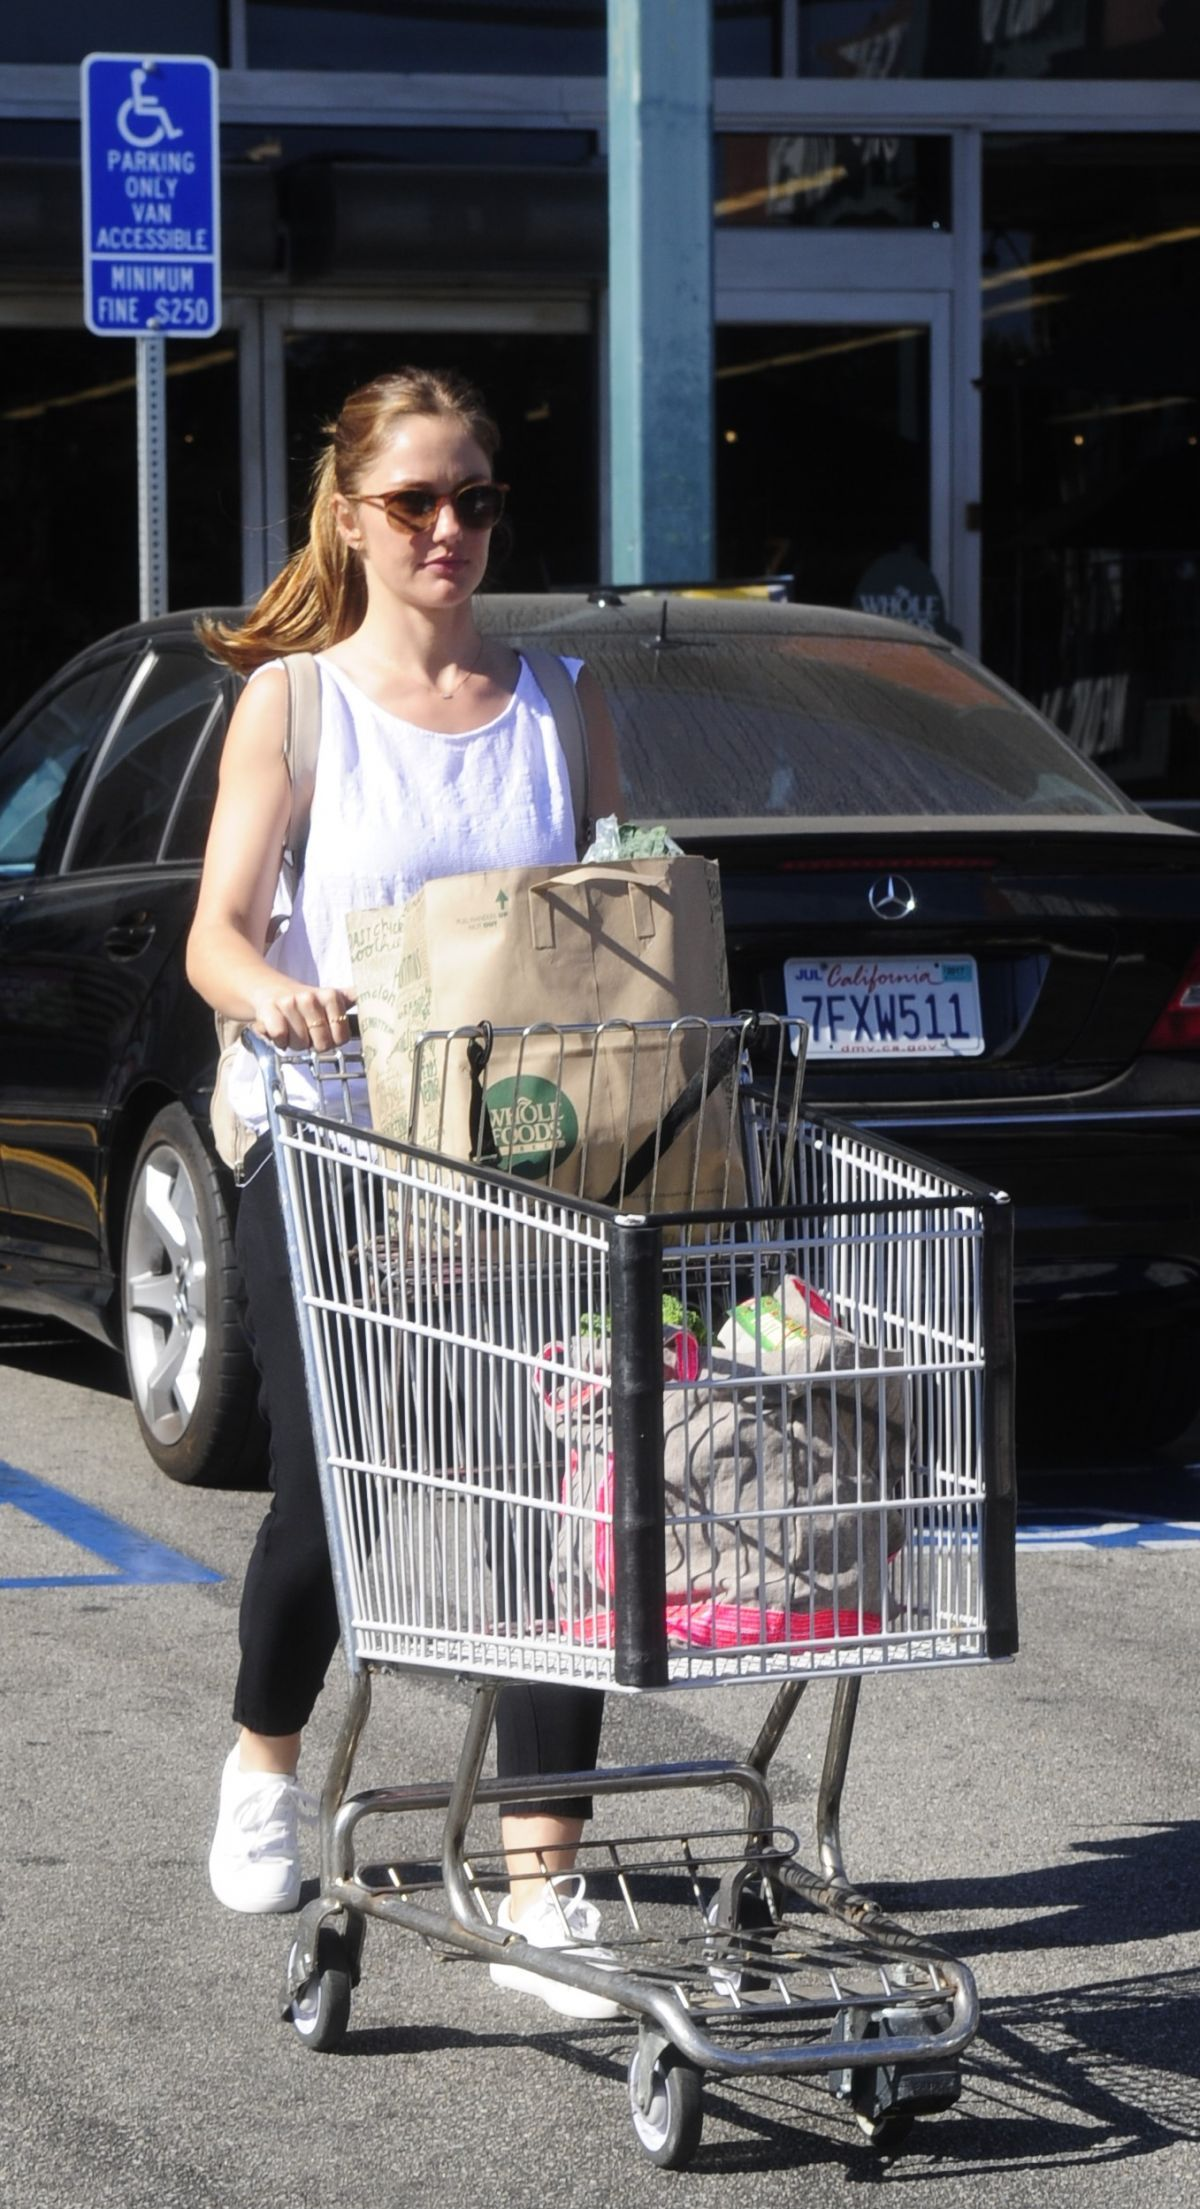 Minka kelly was spotted as she back from shopping at whole